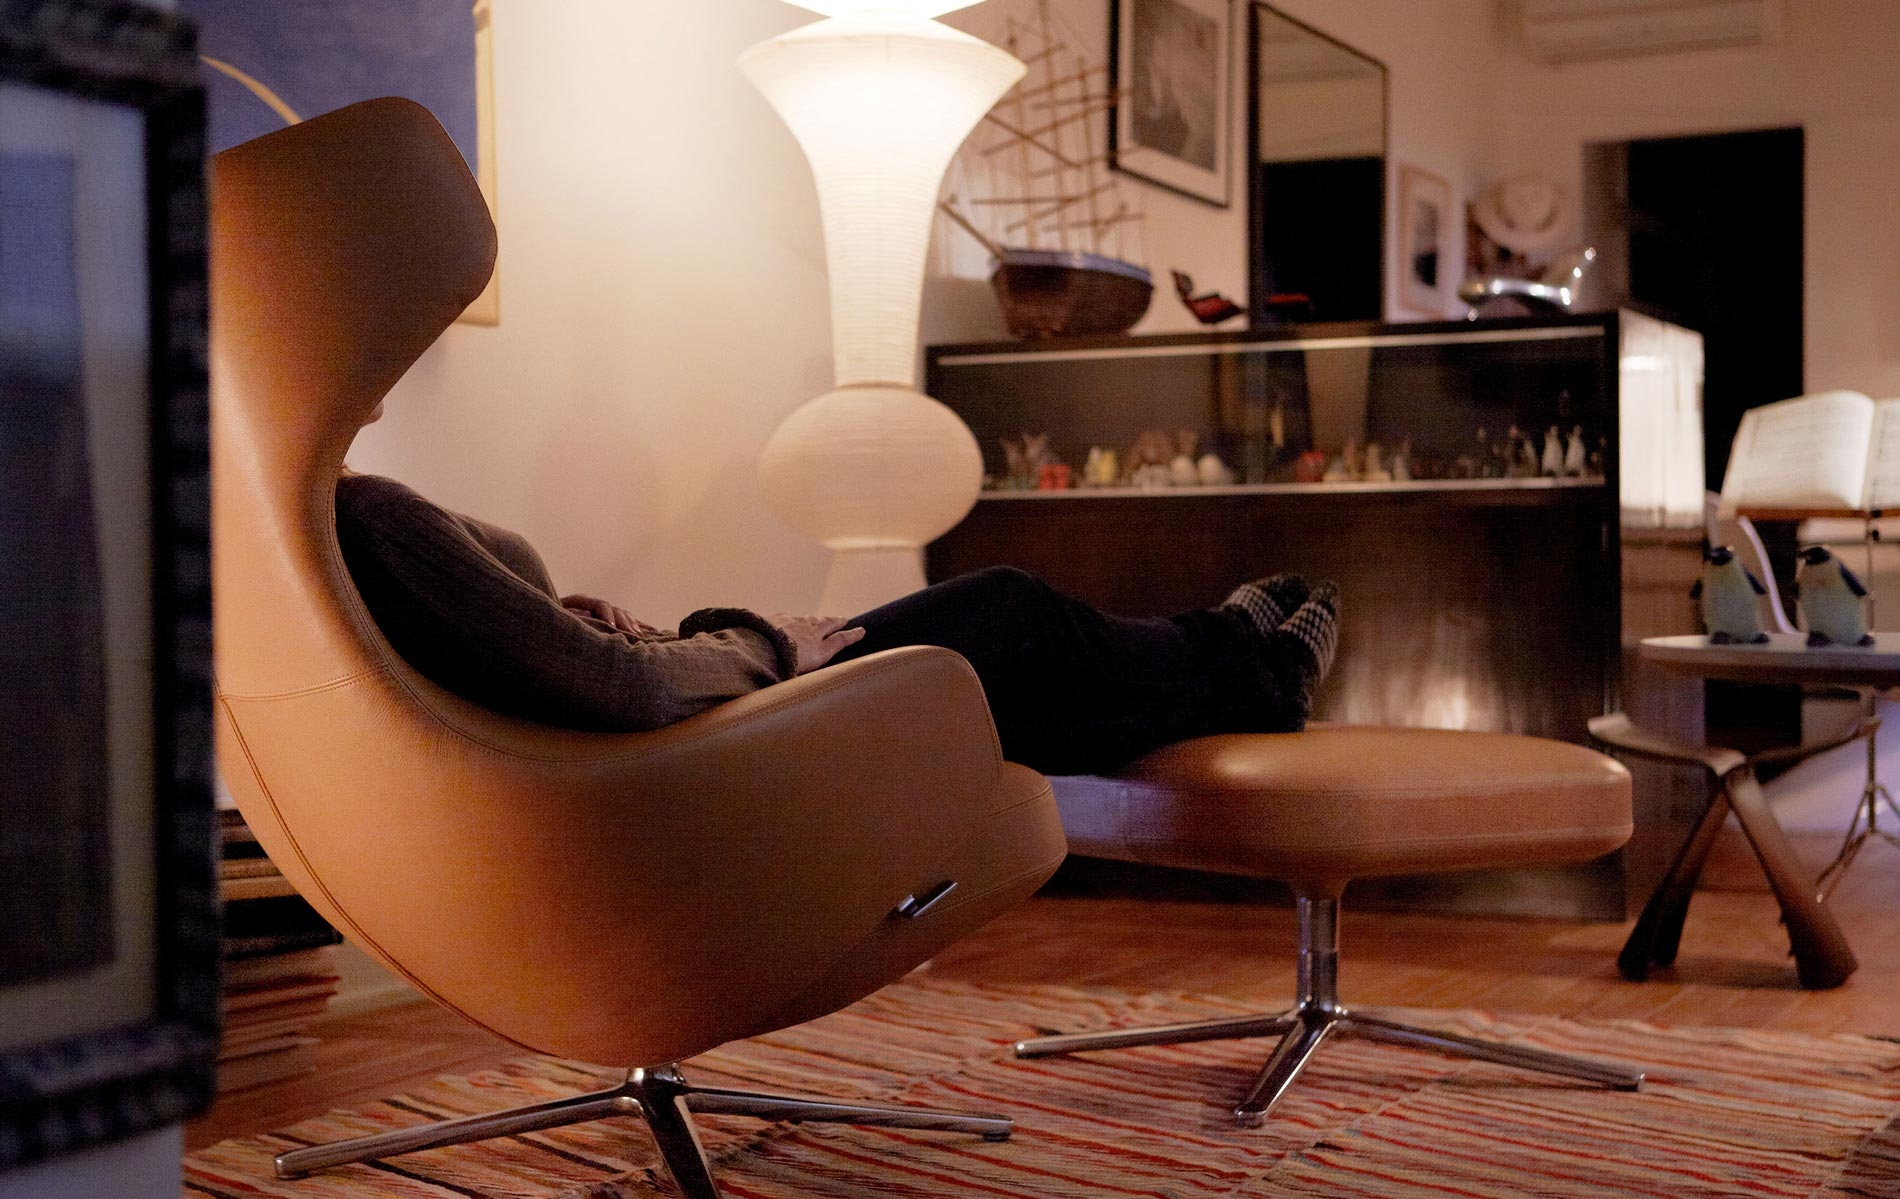 Vitra Sessel Lounge Chair, Repos, Grand Repos und Slow Chair online kaufen bei LIVINGforme.de